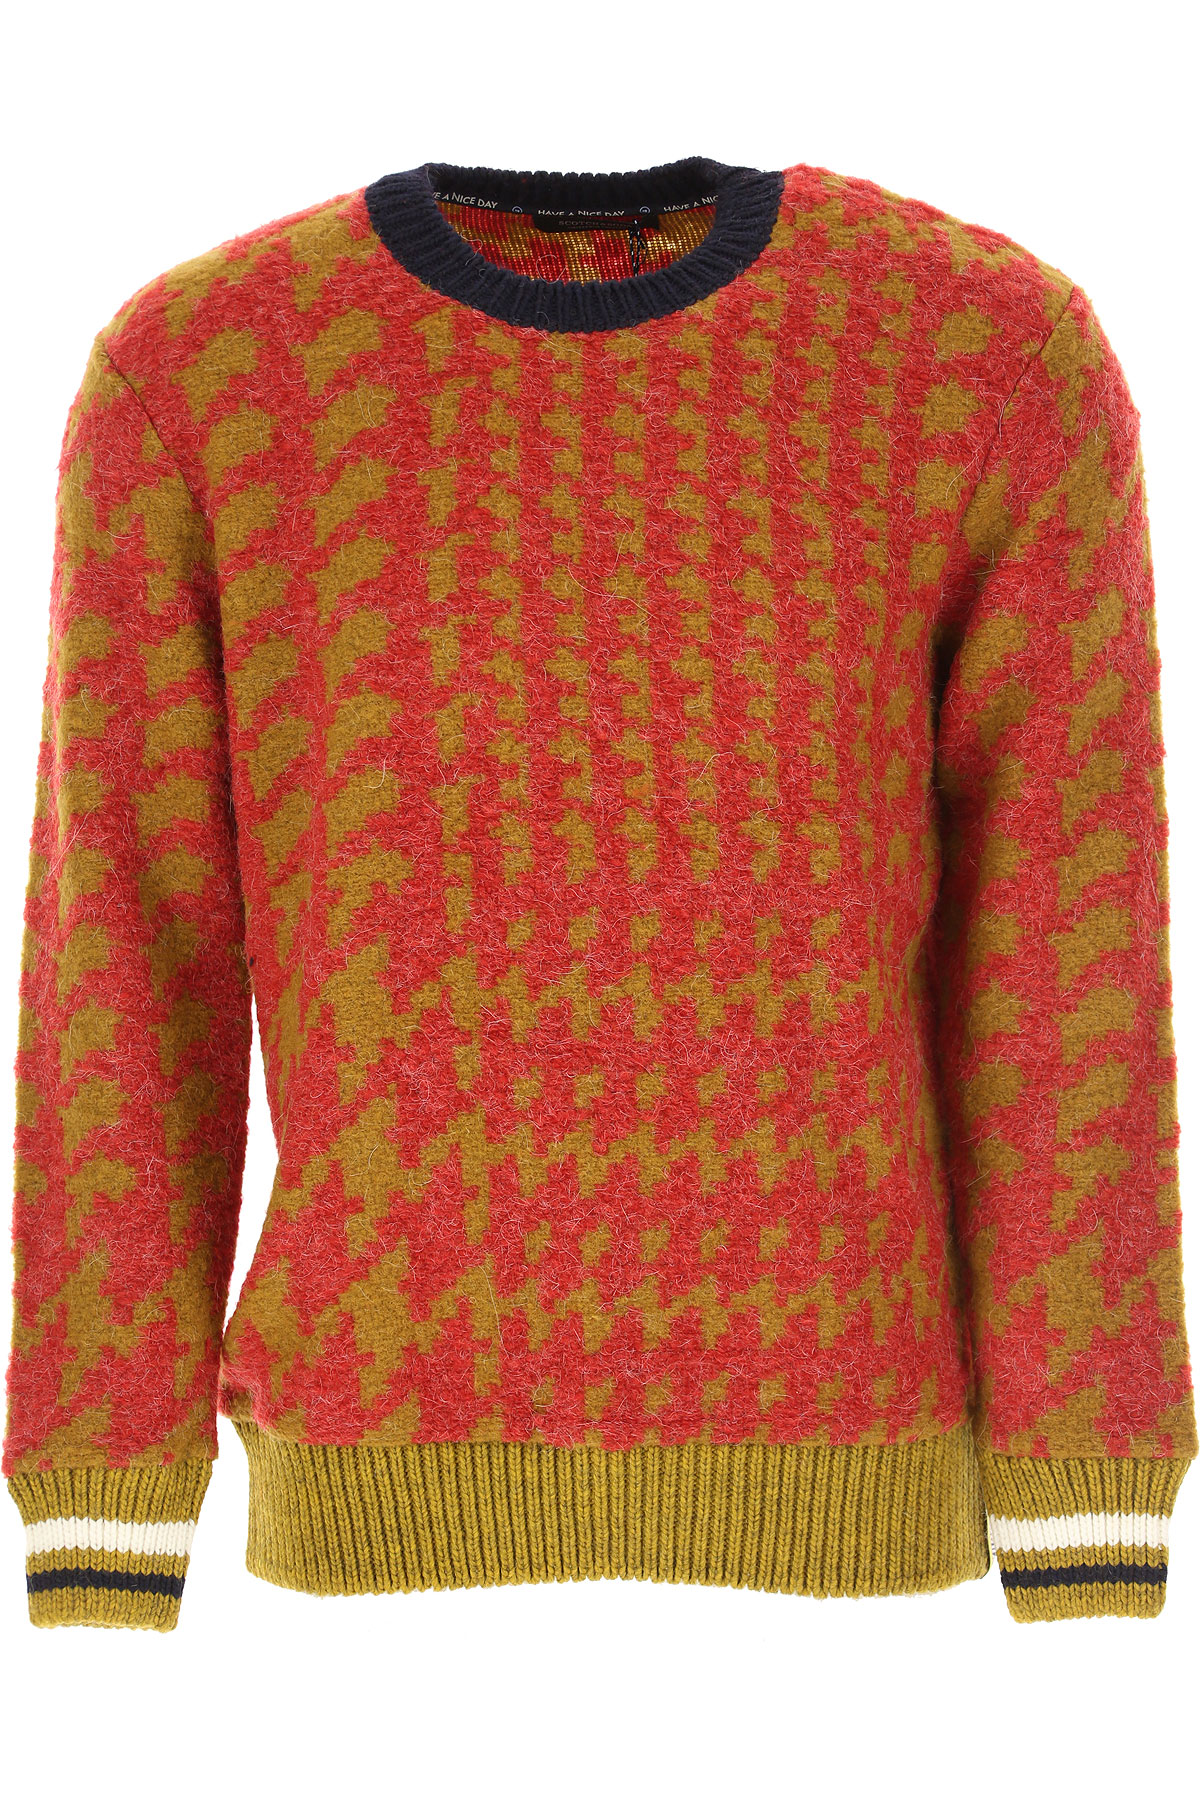 Scotch & Soda Sweater for Men Jumper On Sale, Red, polyester, 2019, L M S XL